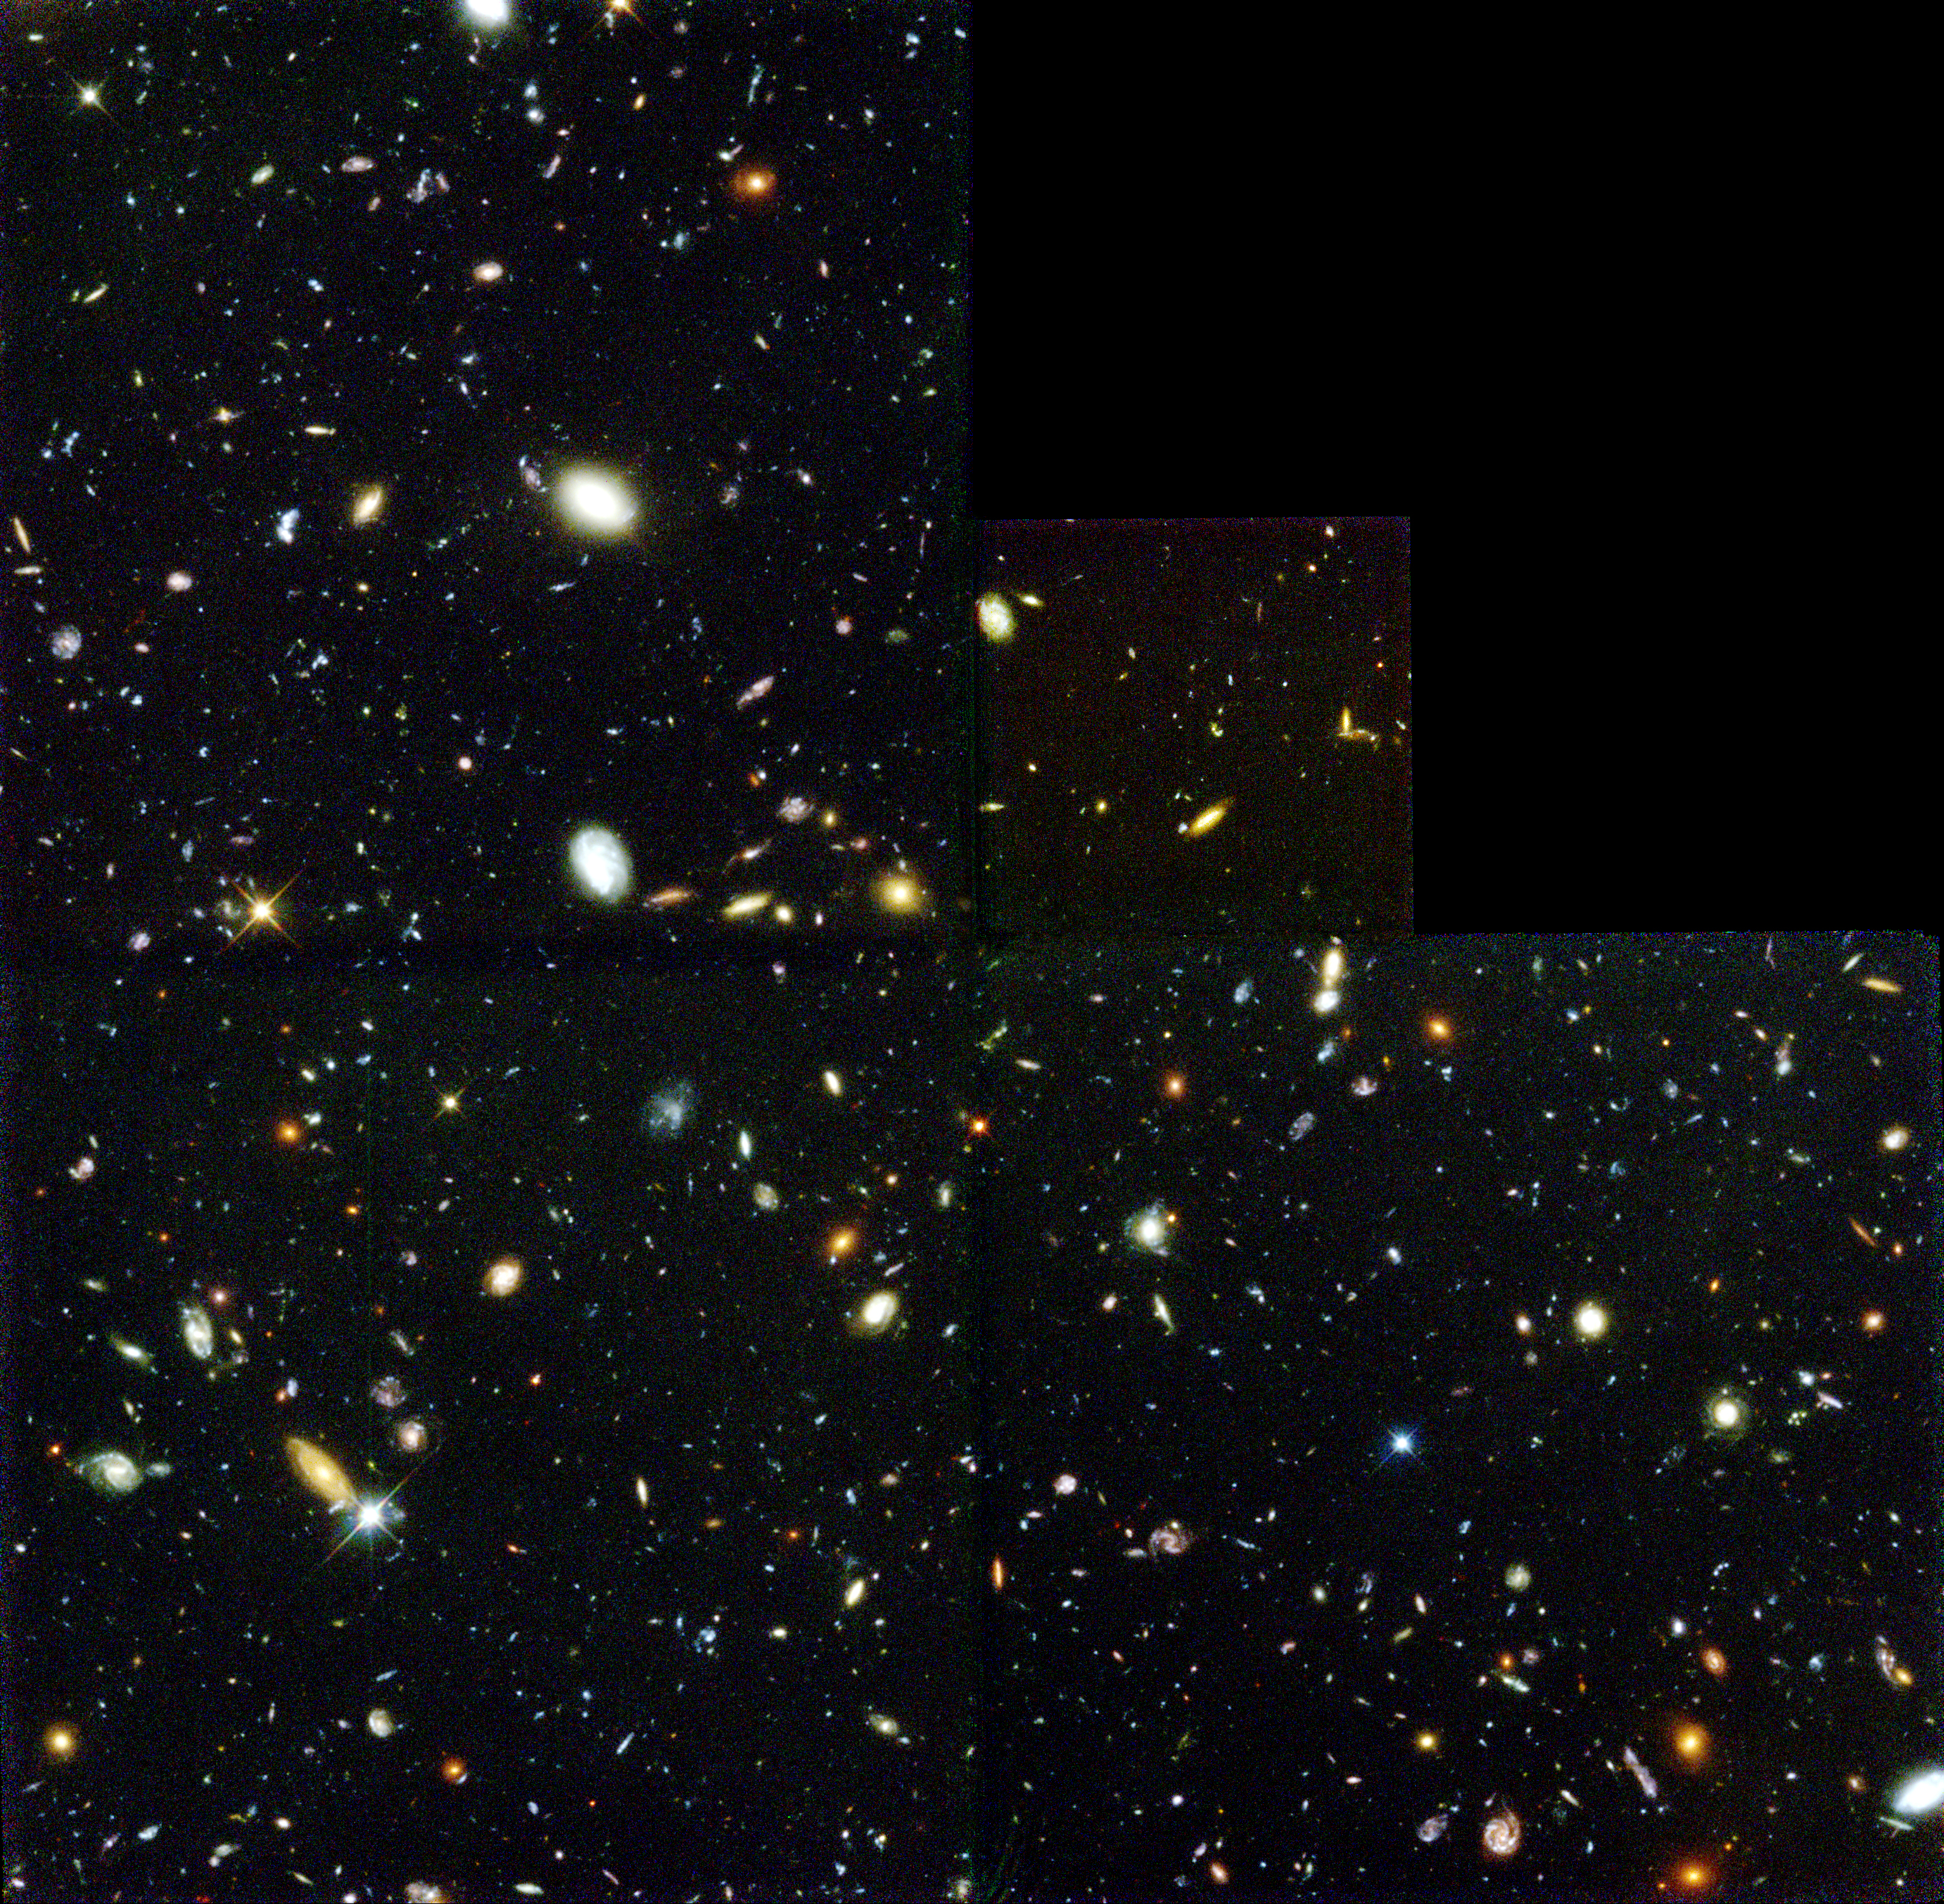 Take comfort in the fact that there are 2 trillion galaxies in which the 2016 election is not occurring